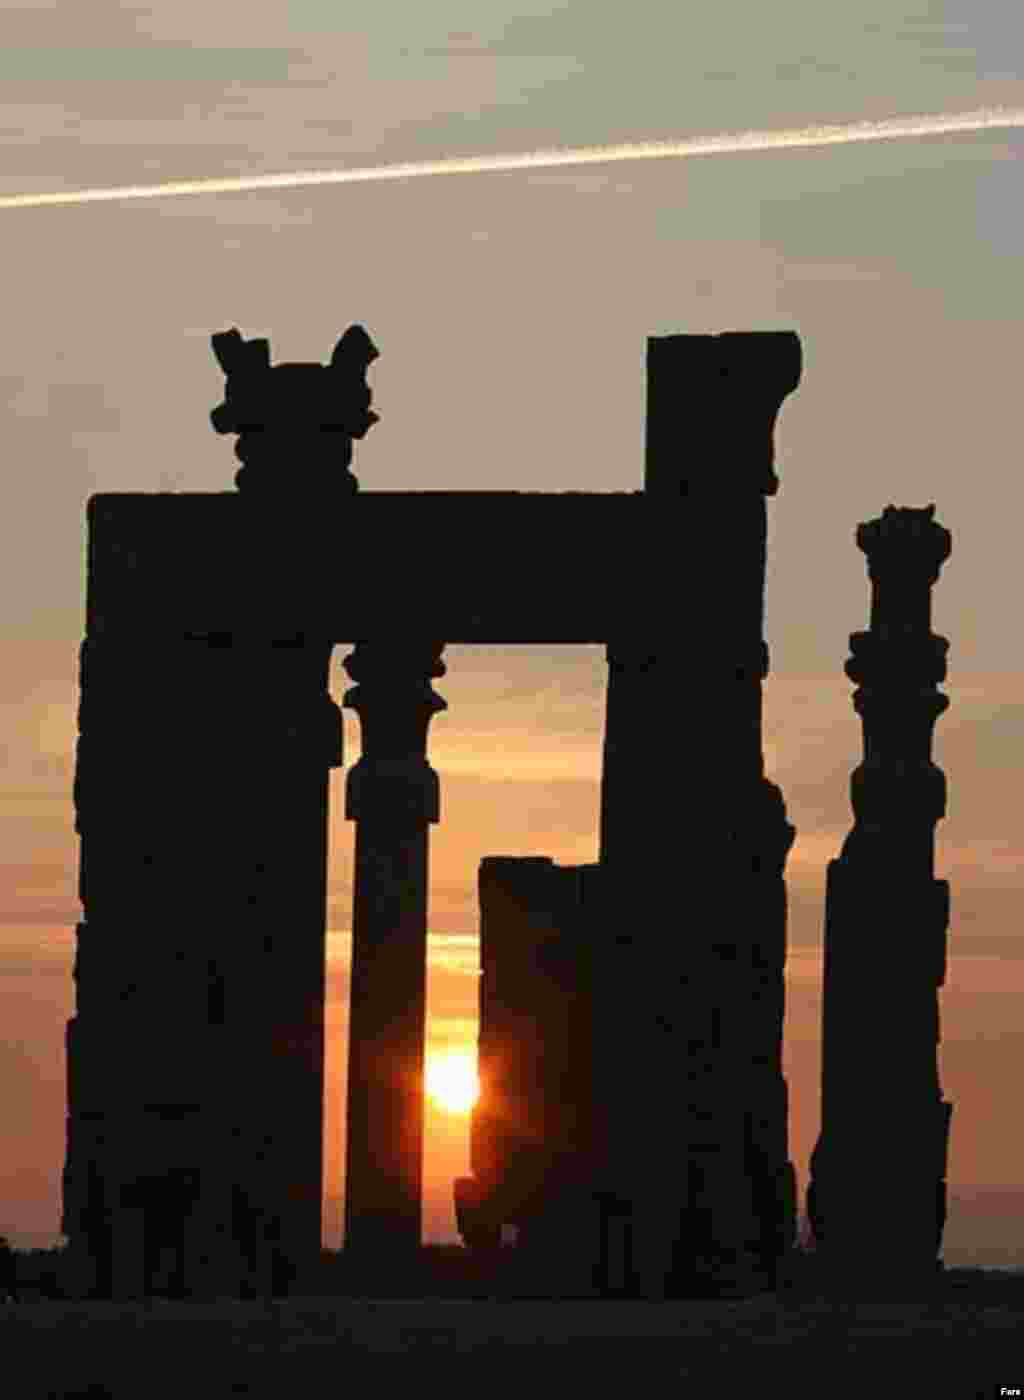 Persepolis at sunset (Fars) - Others are reclaiming their identity from Westerners, whose perceptions -- and stereotypes -- were shaped by the ancient Greeks' depiction of the Persians as indolent despots. Instead, they argue, the Persians had a prosperous civilization and an effective empire.